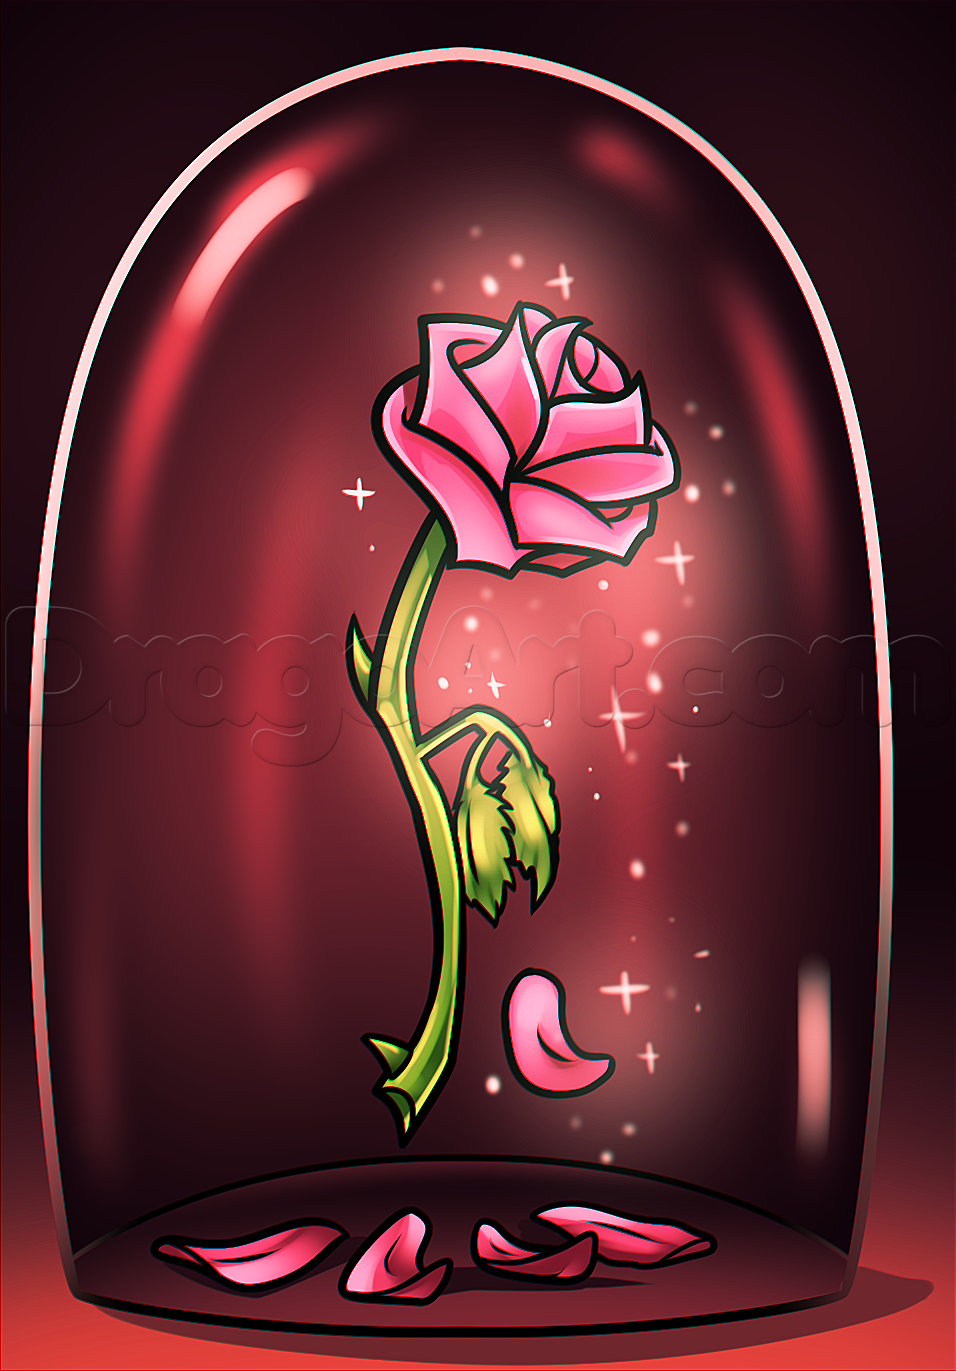 Beauty And The Beast Rose Drawing Step By Step Disney Characters Cartoons Draw Cartoon Char Beauty And The Beast Drawing Rose Drawing Beauty And Beast Rose